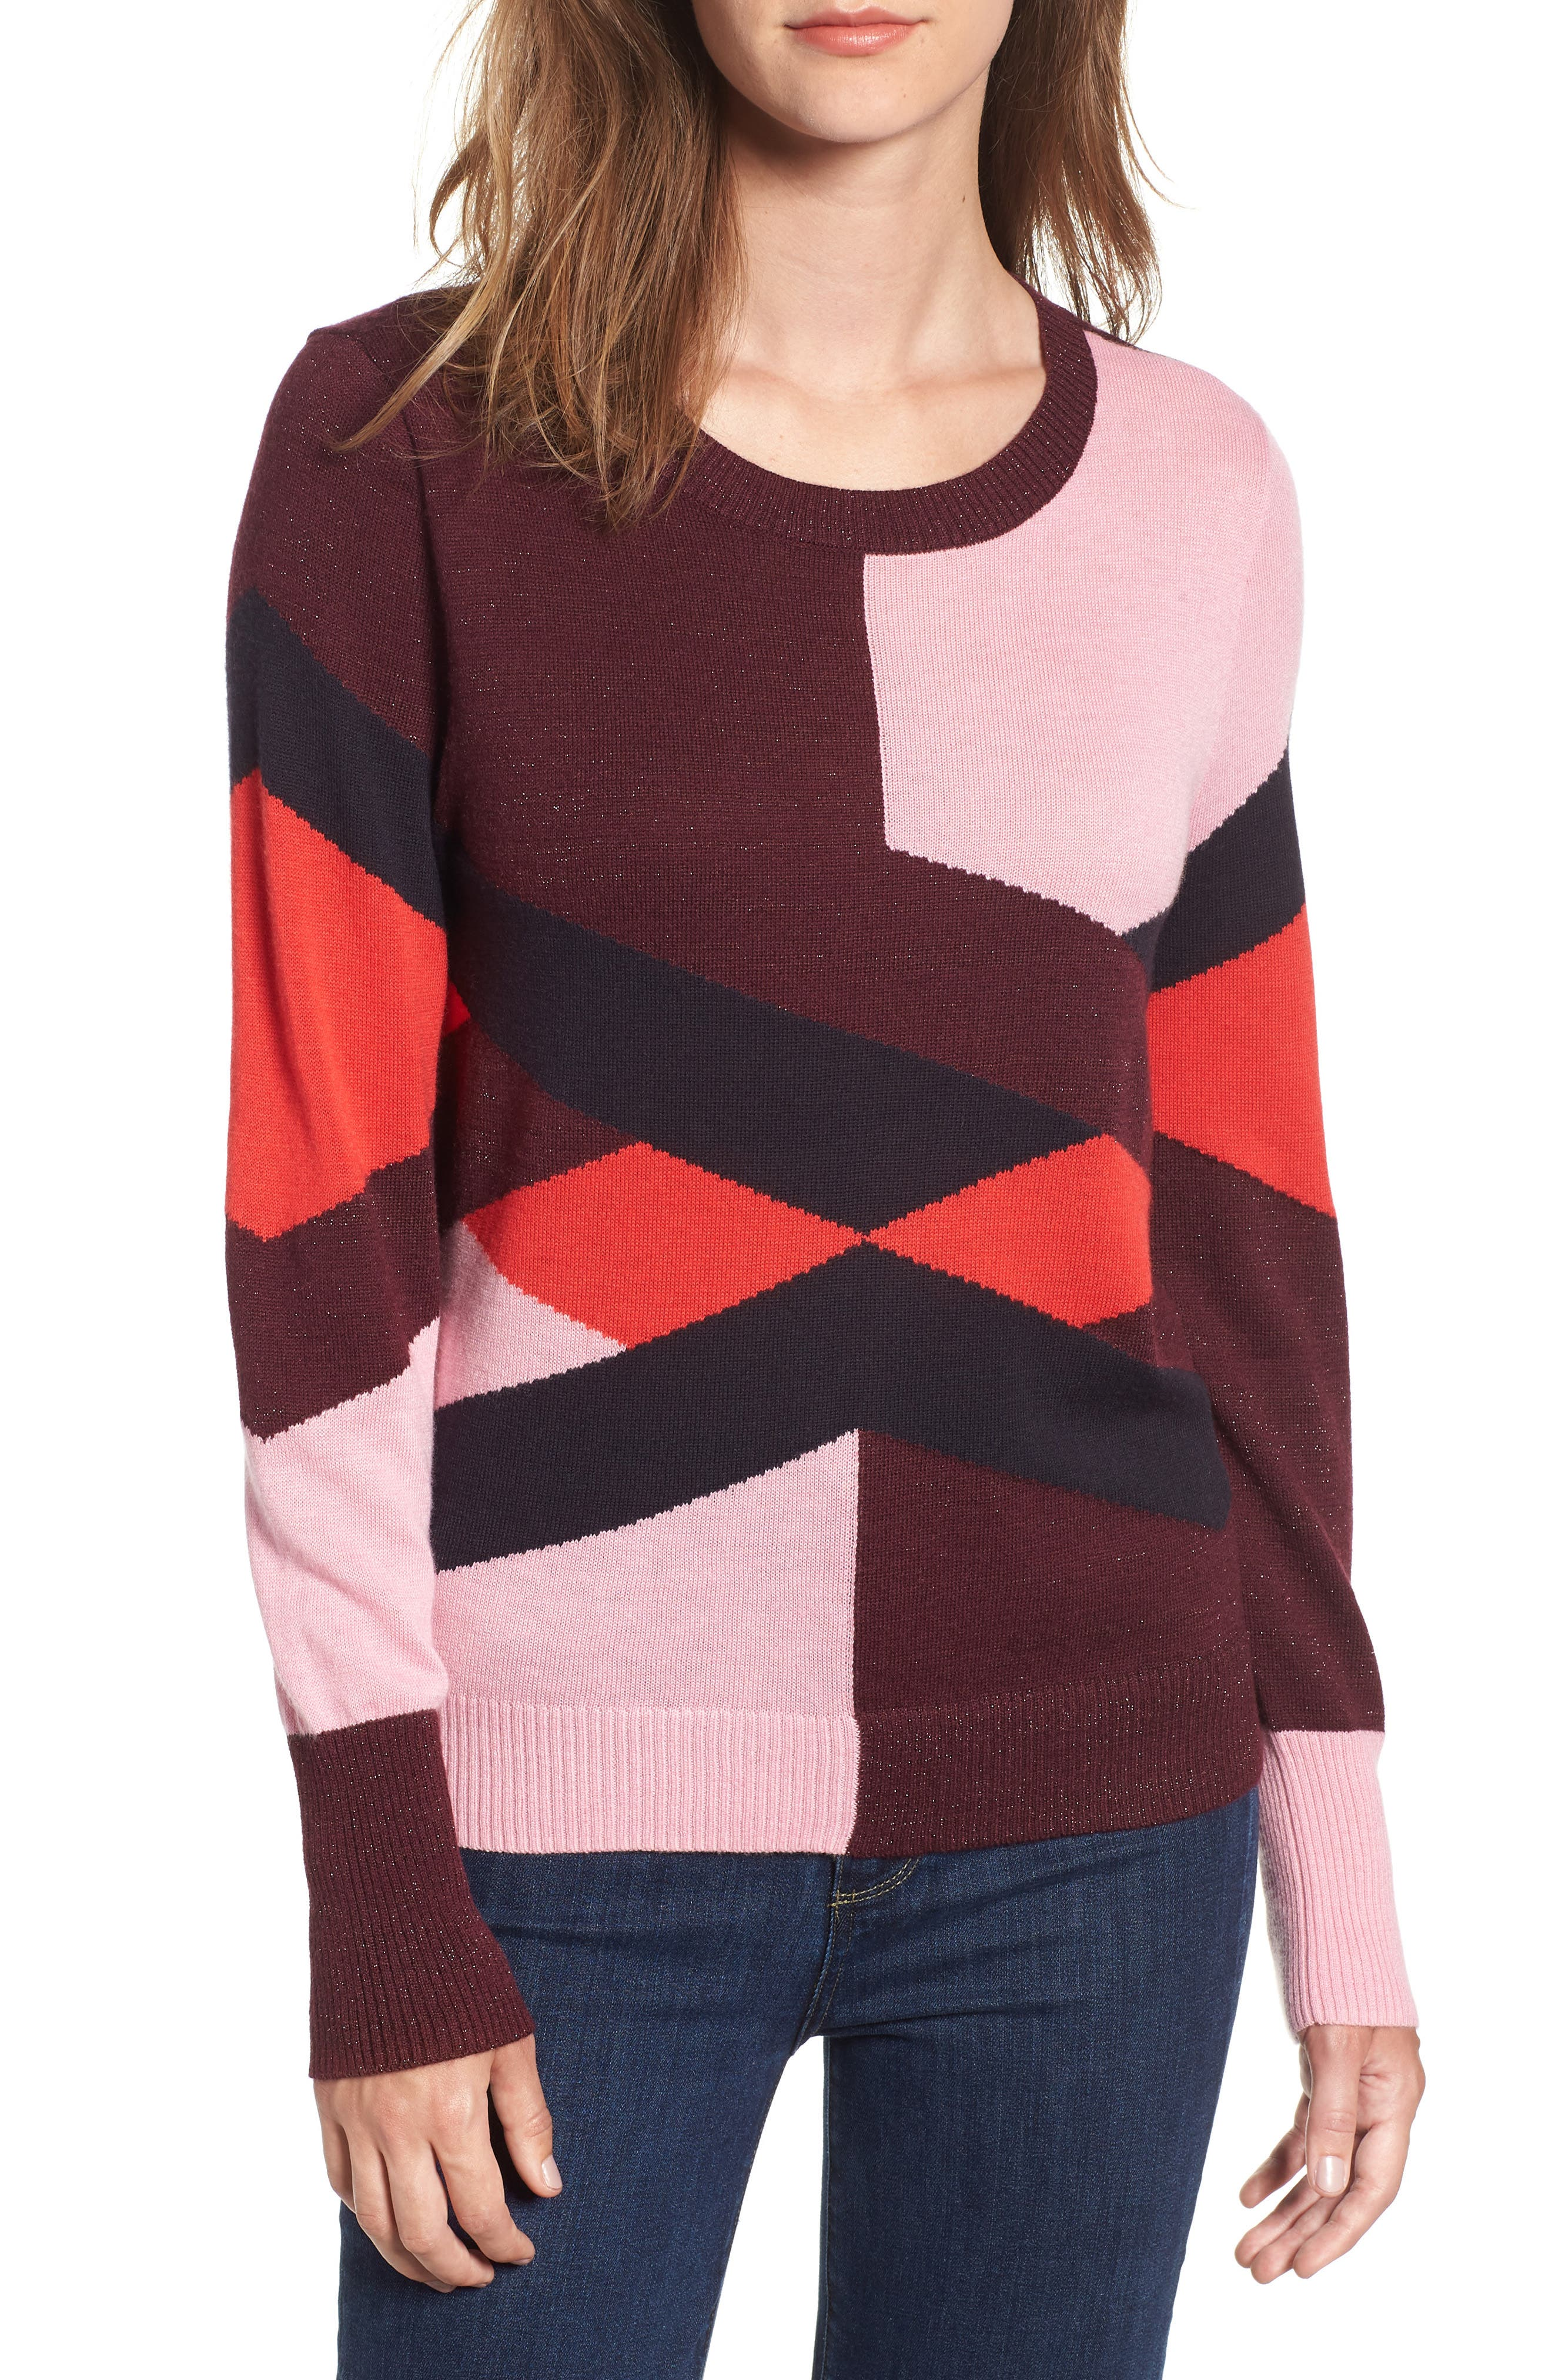 Intarsia Sweater,                             Main thumbnail 1, color,                             PINK STORM GRAPHIC INTARSIA